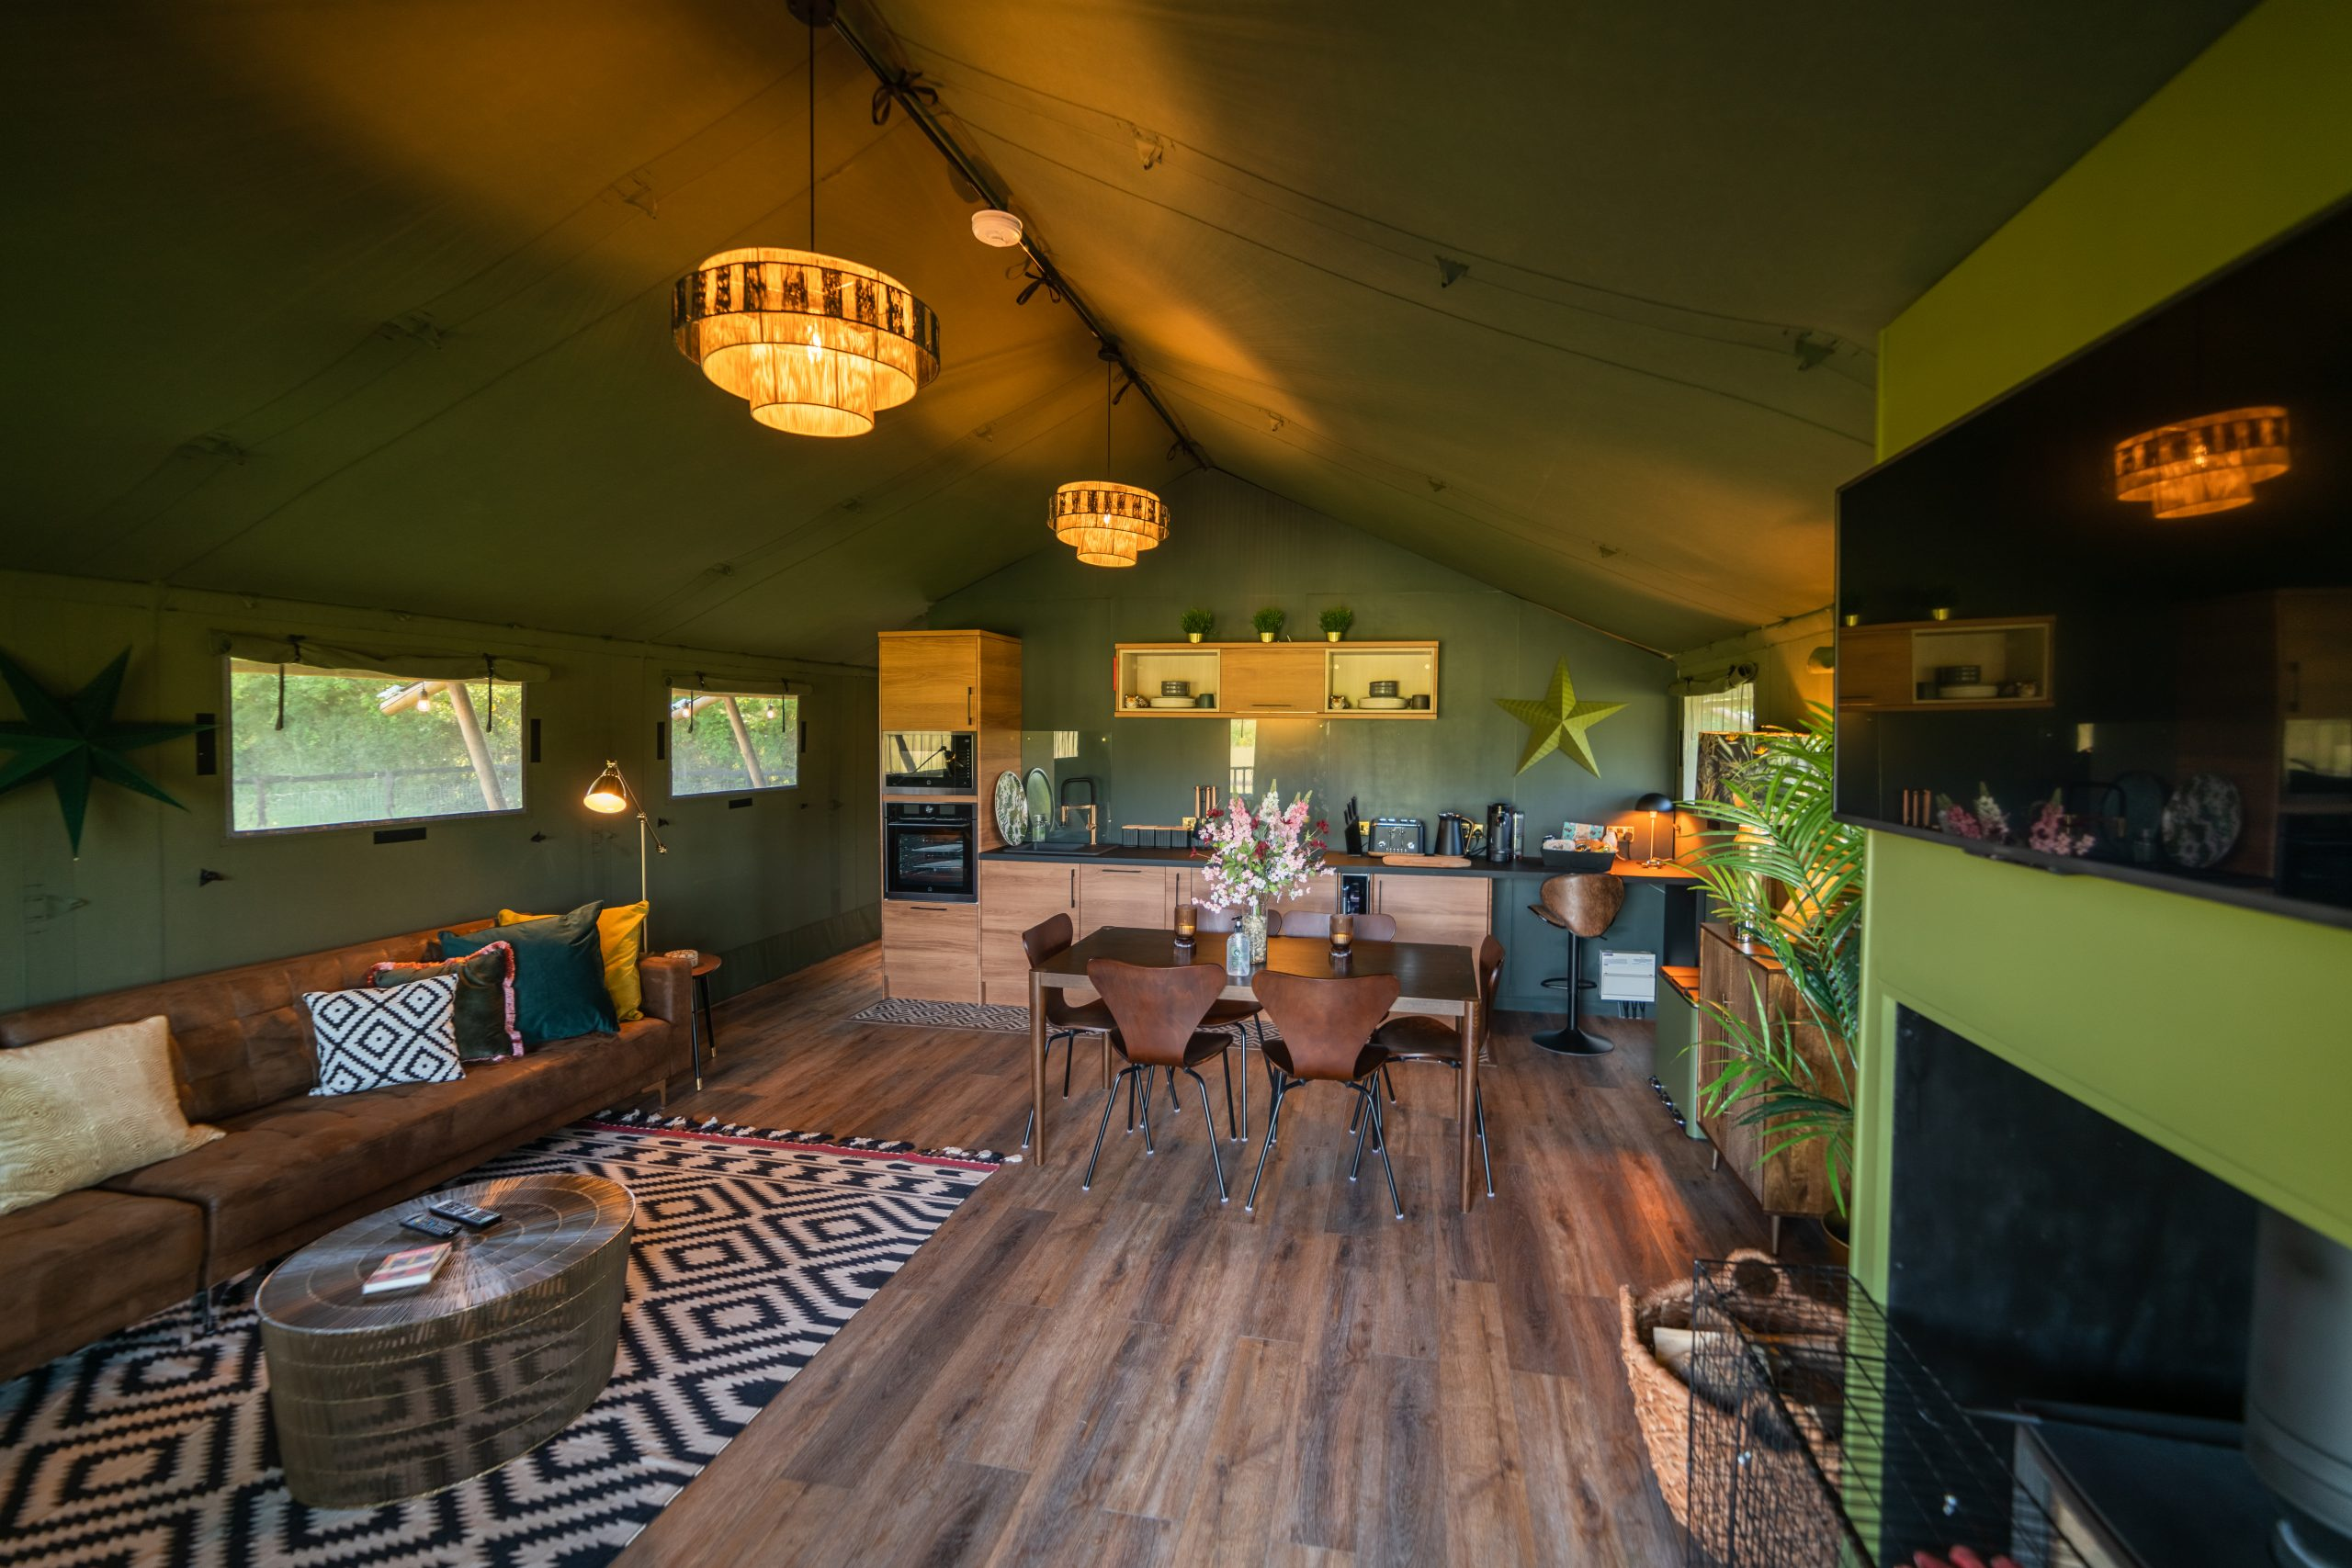 Swallowfields Luxury Glamping Retreat welcomes its first guests!